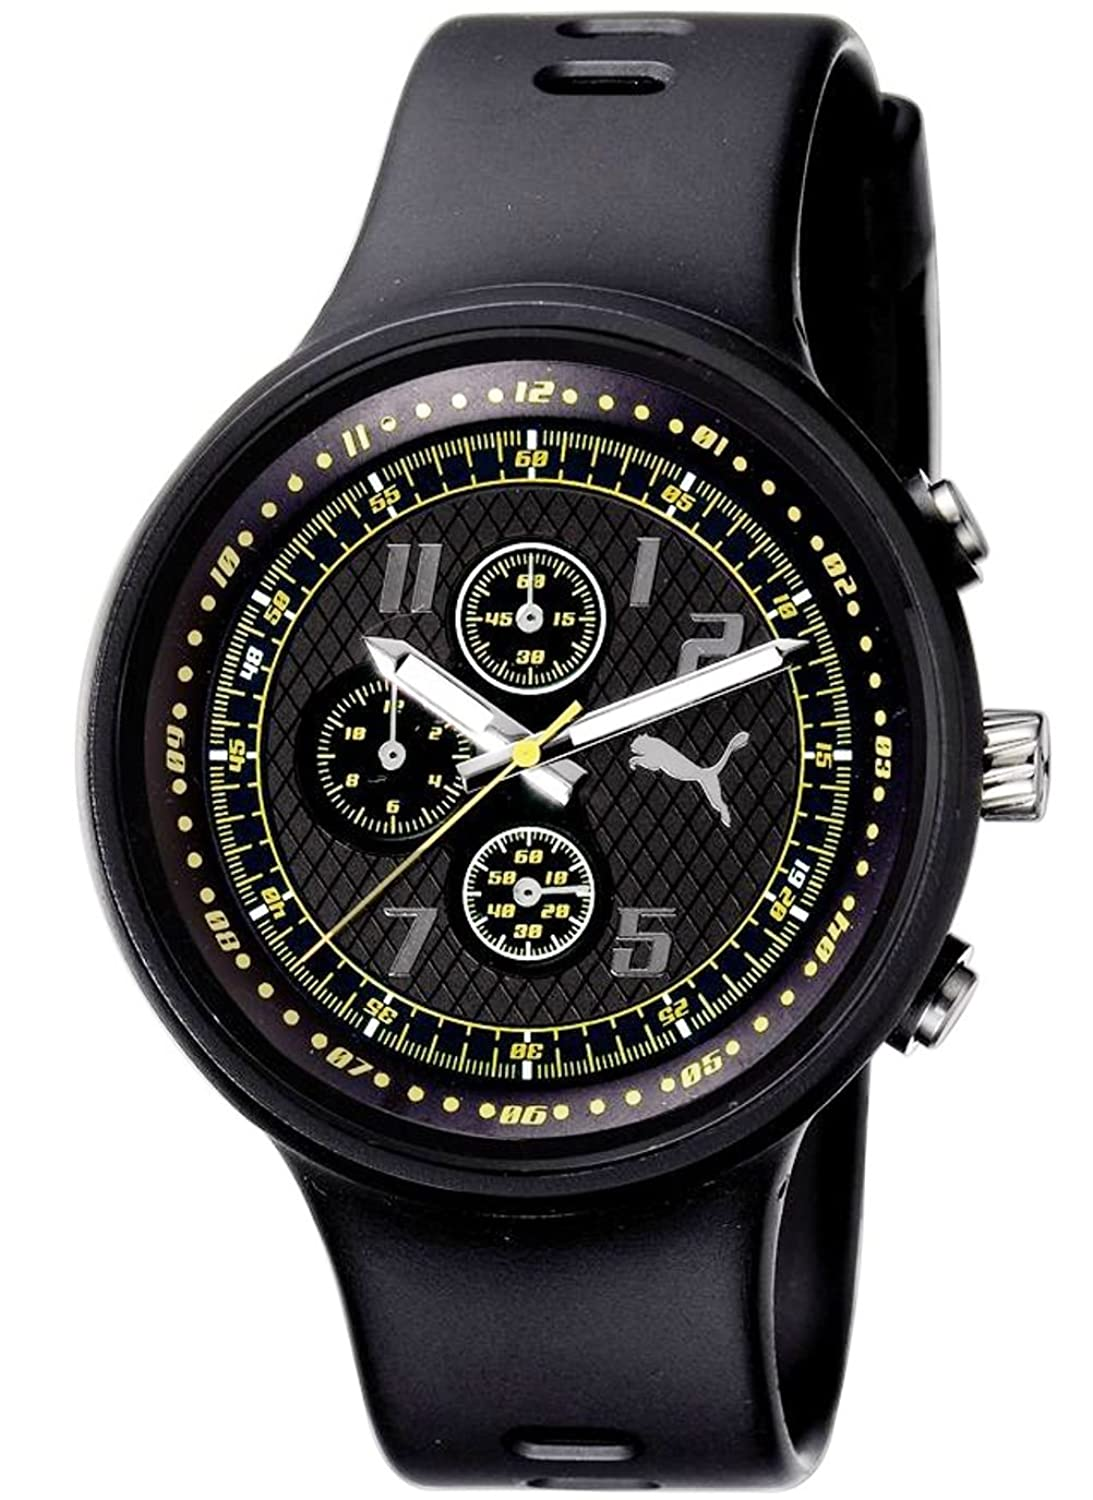 amazon com puma men s pu910401004 slick chronograph black and amazon com puma men s pu910401004 slick chronograph black and yellow accented dial watch puma watches